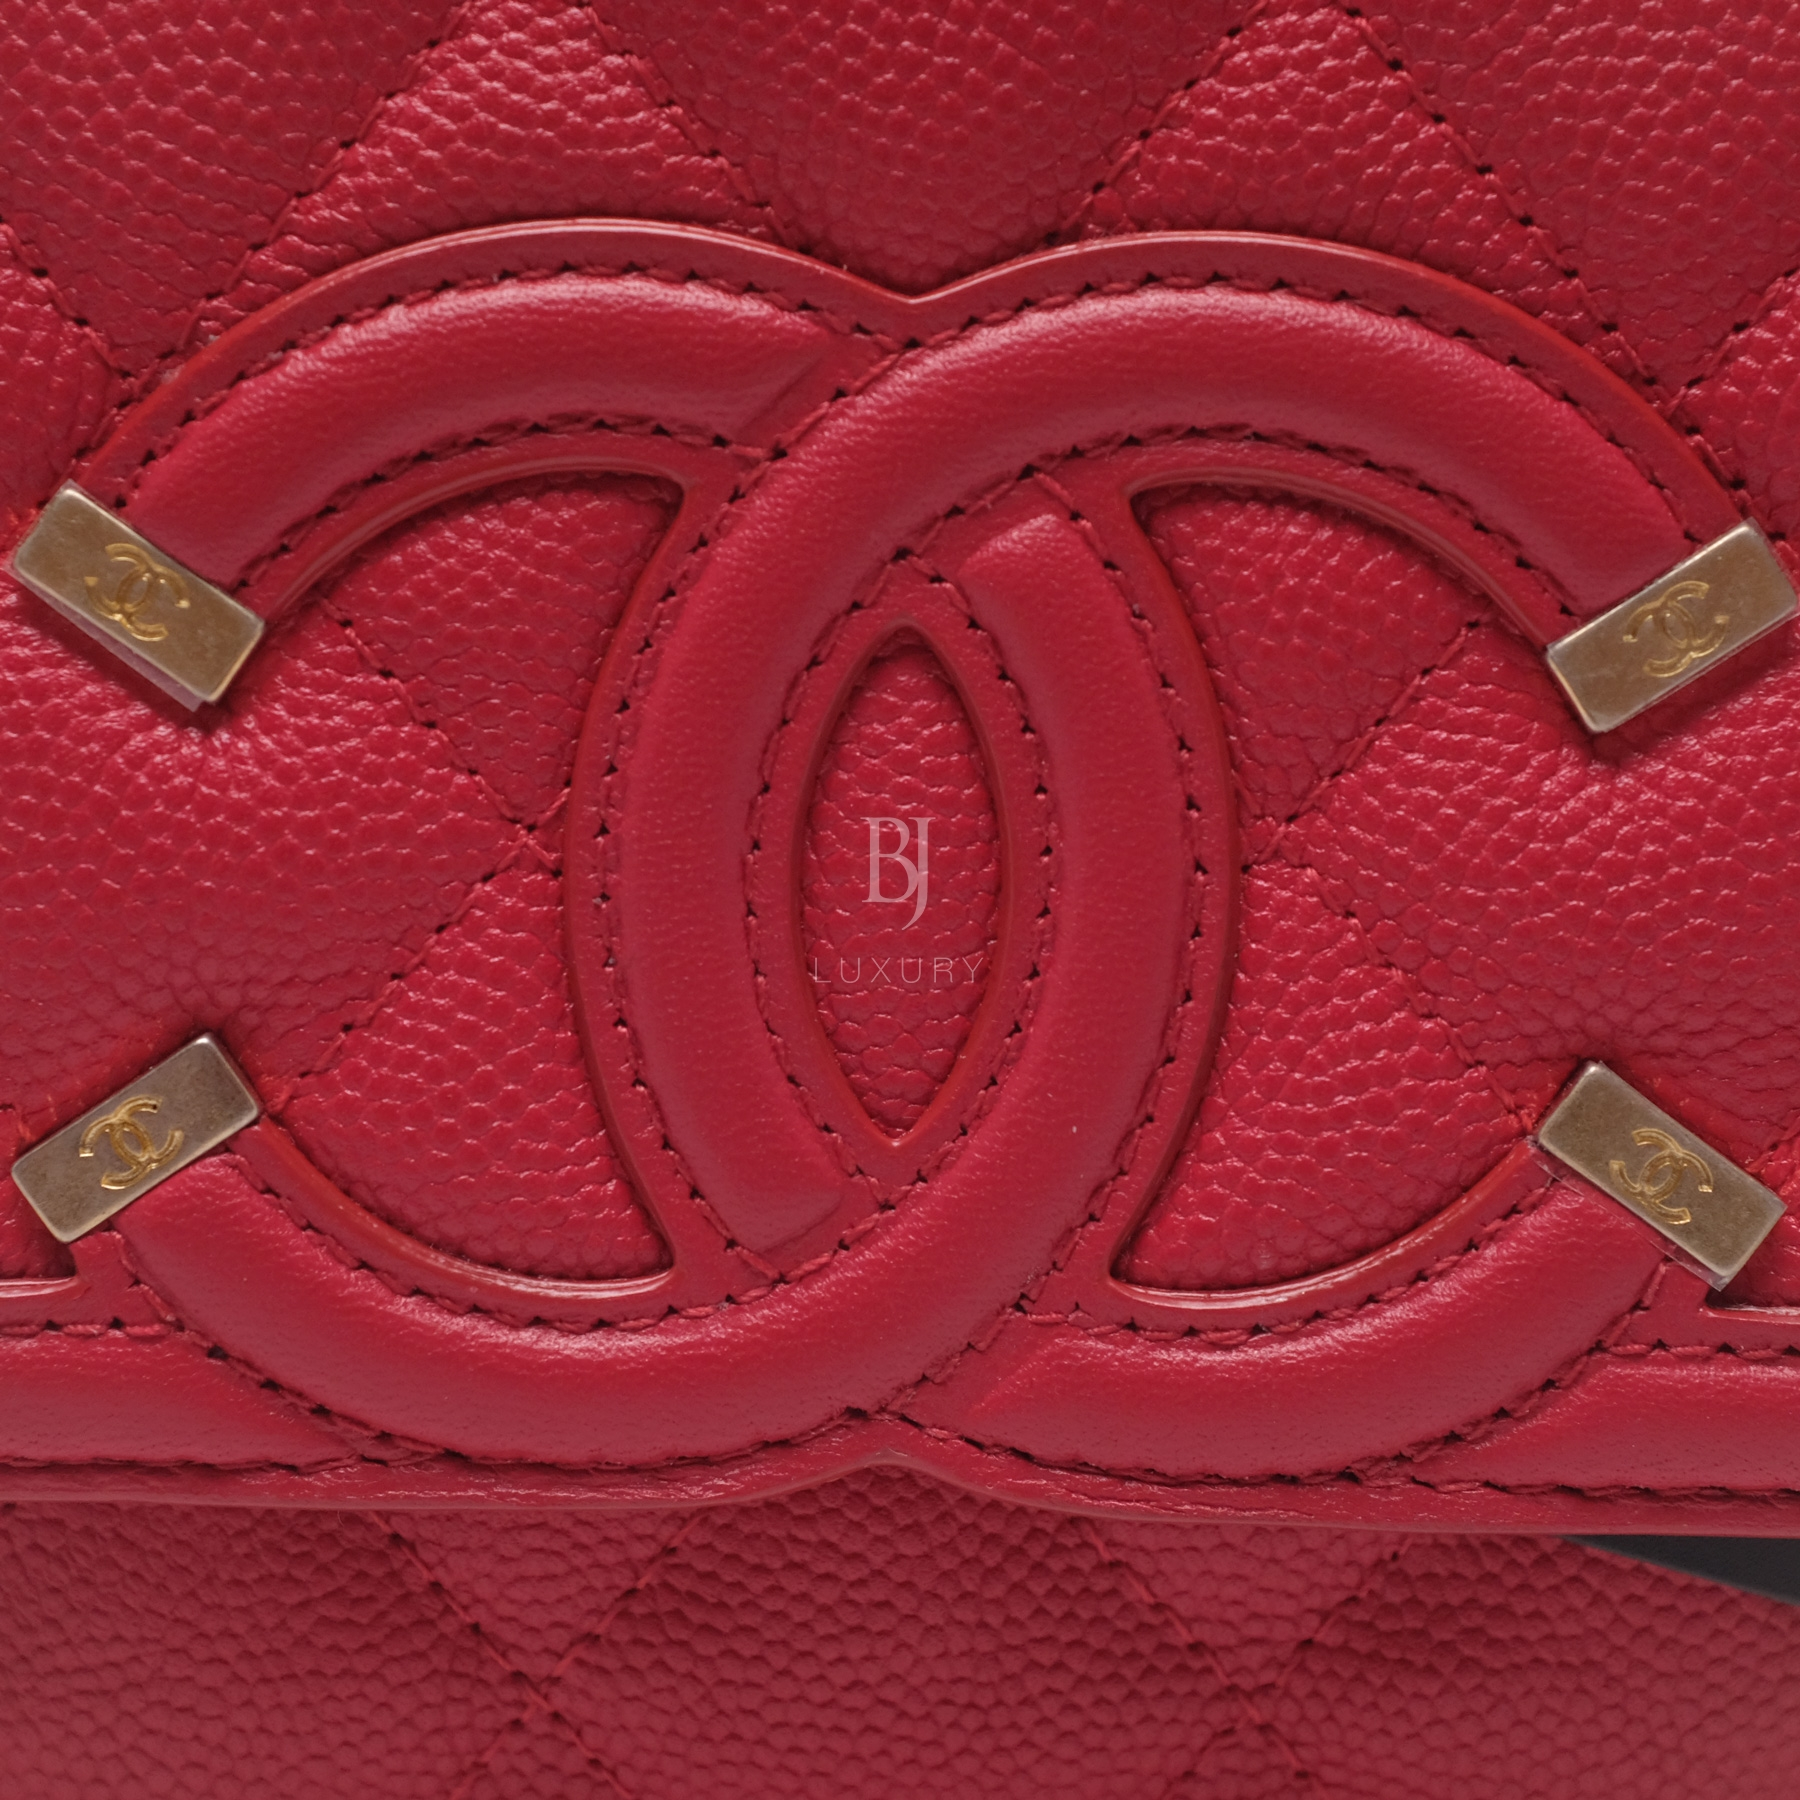 Chanel Wallet On Chain Red Caviar Brushed Gold BJ Luxury 11.jpg